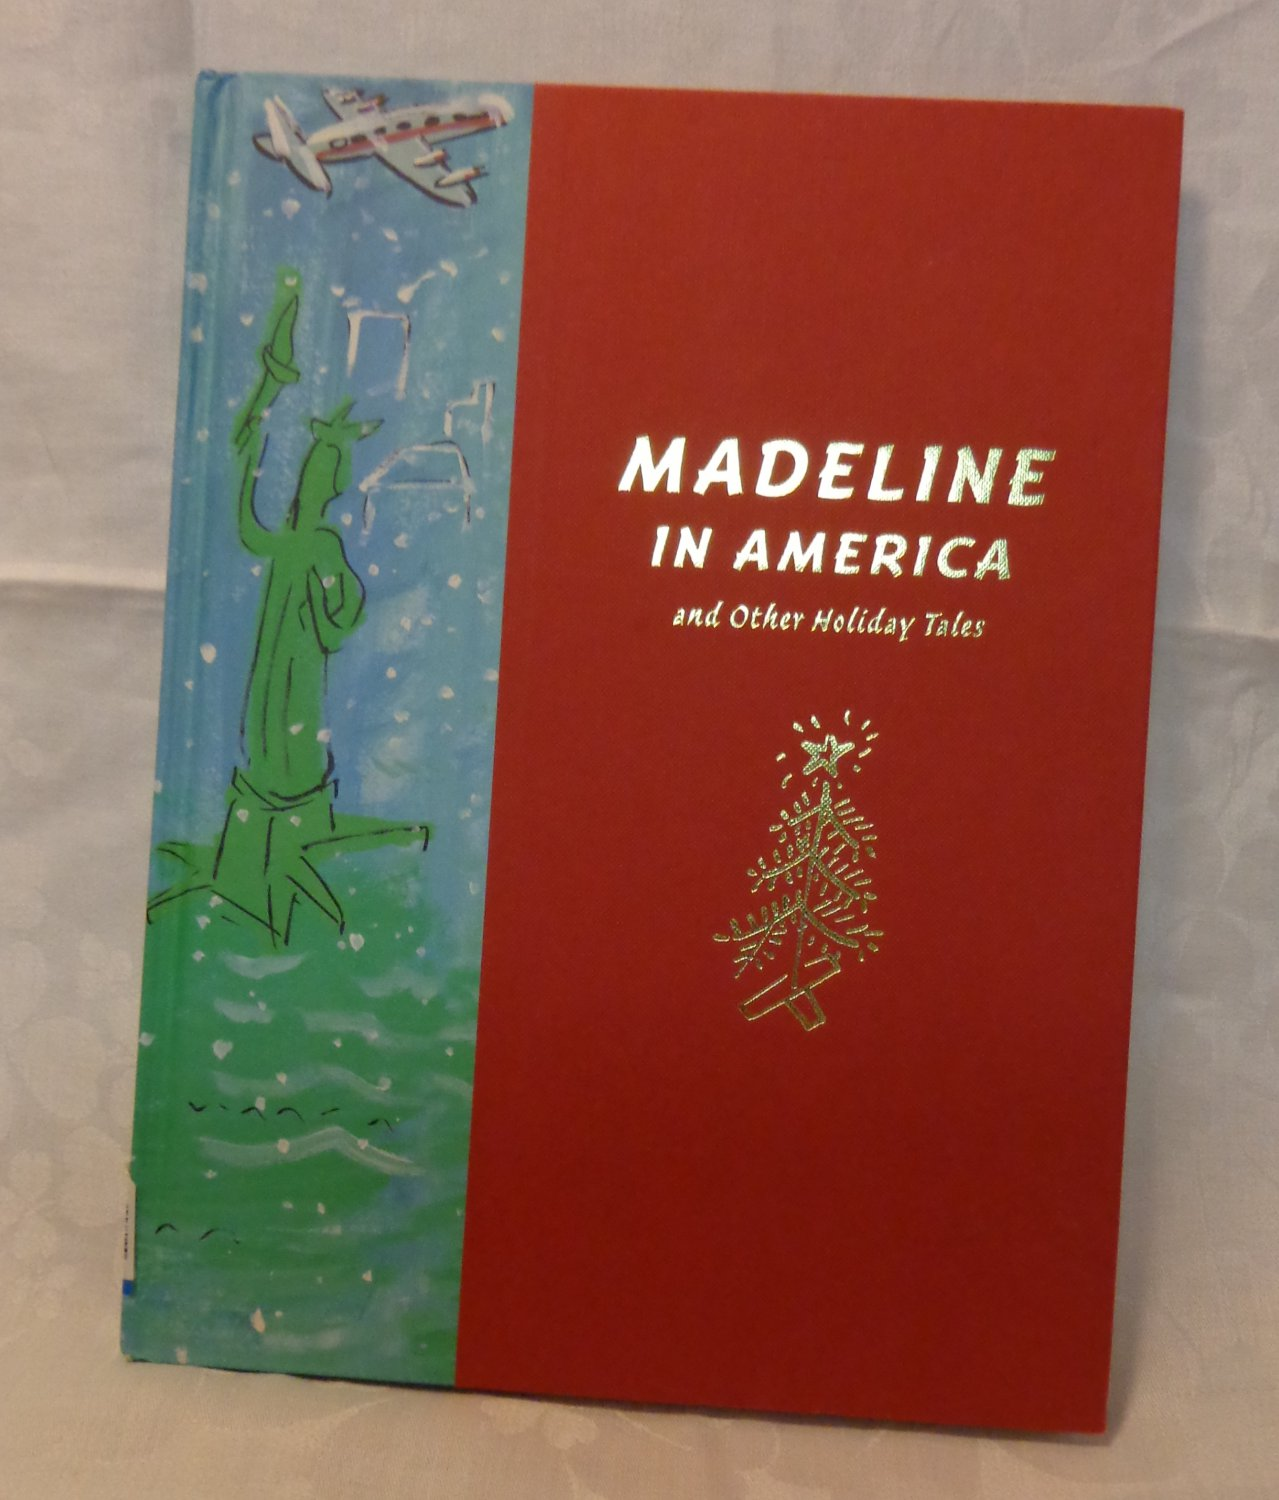 Madeline In America and Other Holiday Tales Bemelmans Marciano Scholastic Press hb fine AL1540